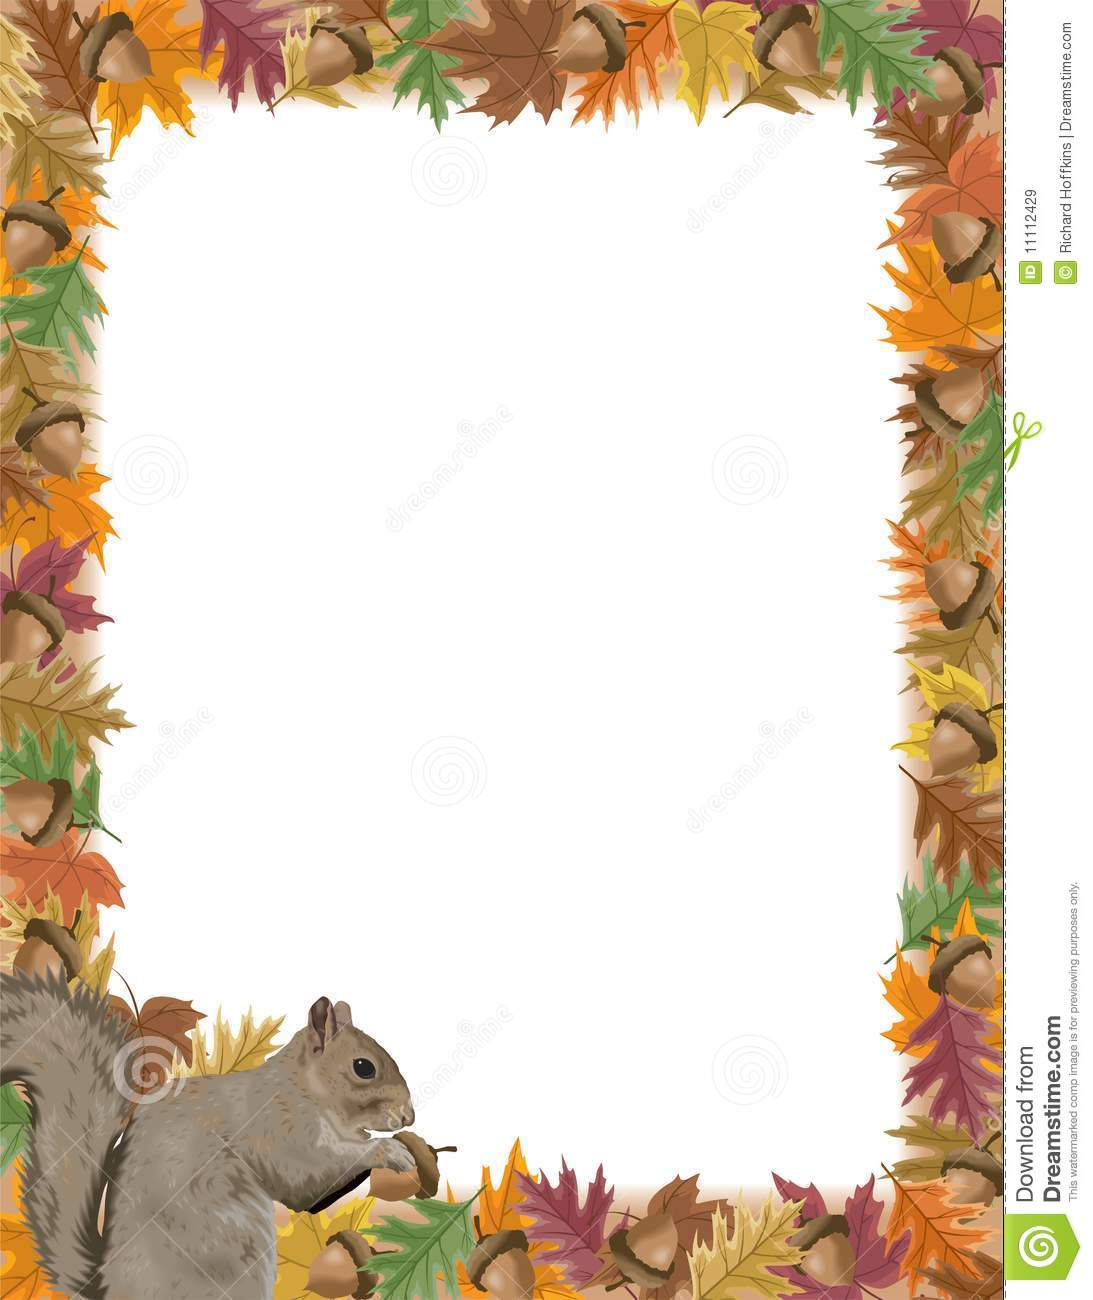 Squirrel Picture Frame